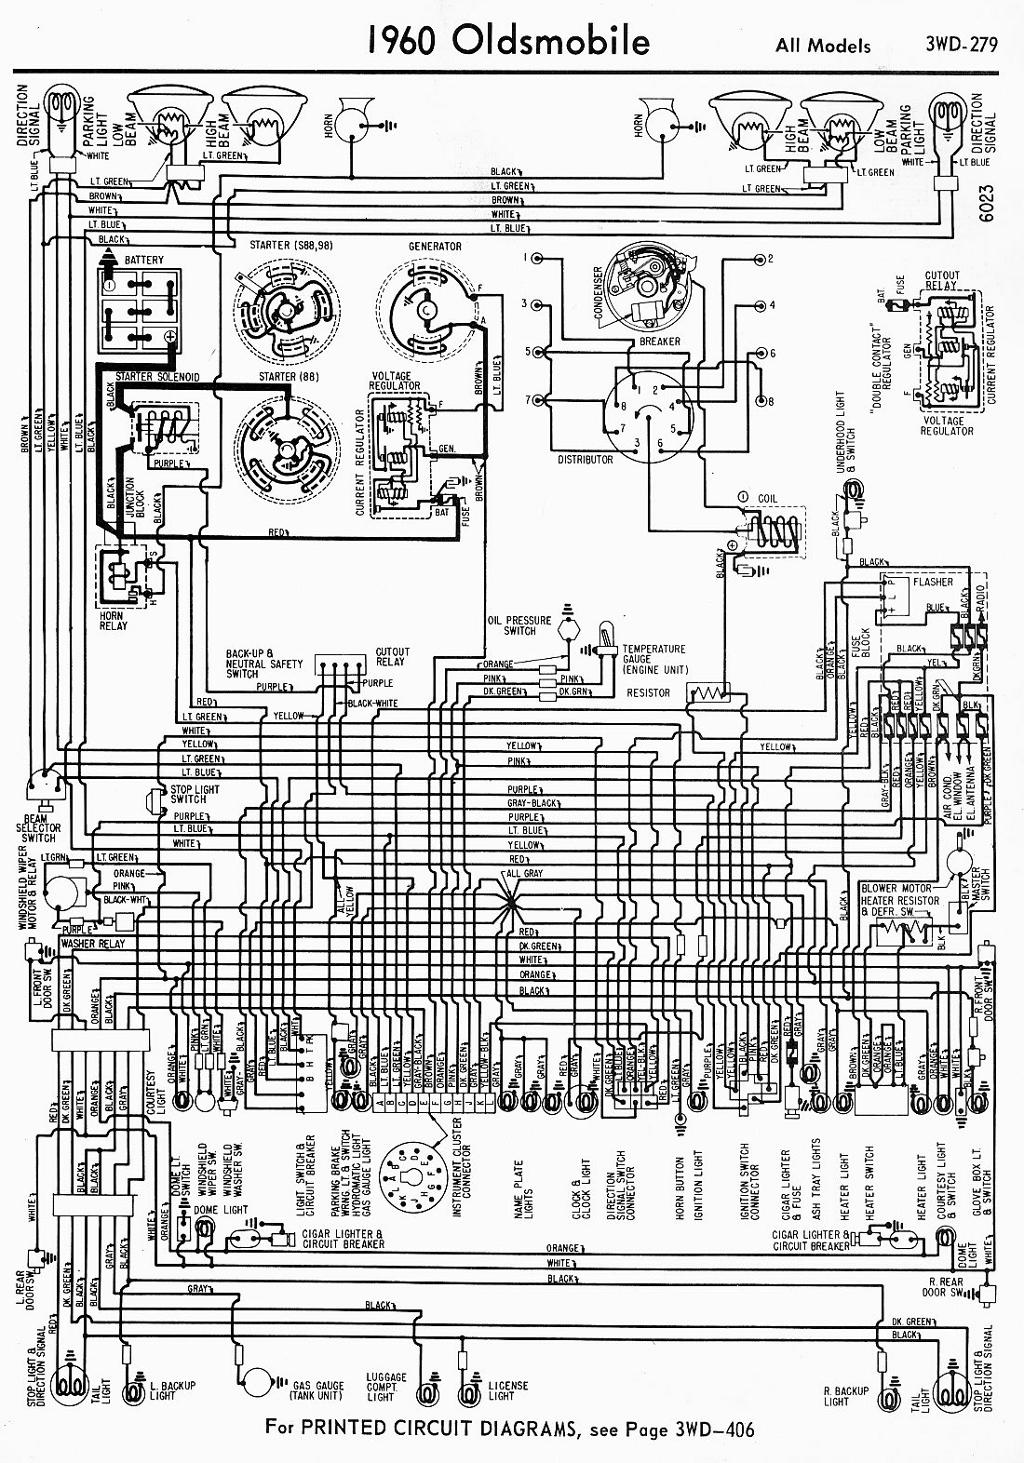 1954 Dodge Wiring Diagram Trusted Diagrams Pickup For 1960 Oldsmobile All Models Wire Data Schema U2022 2011 Ram